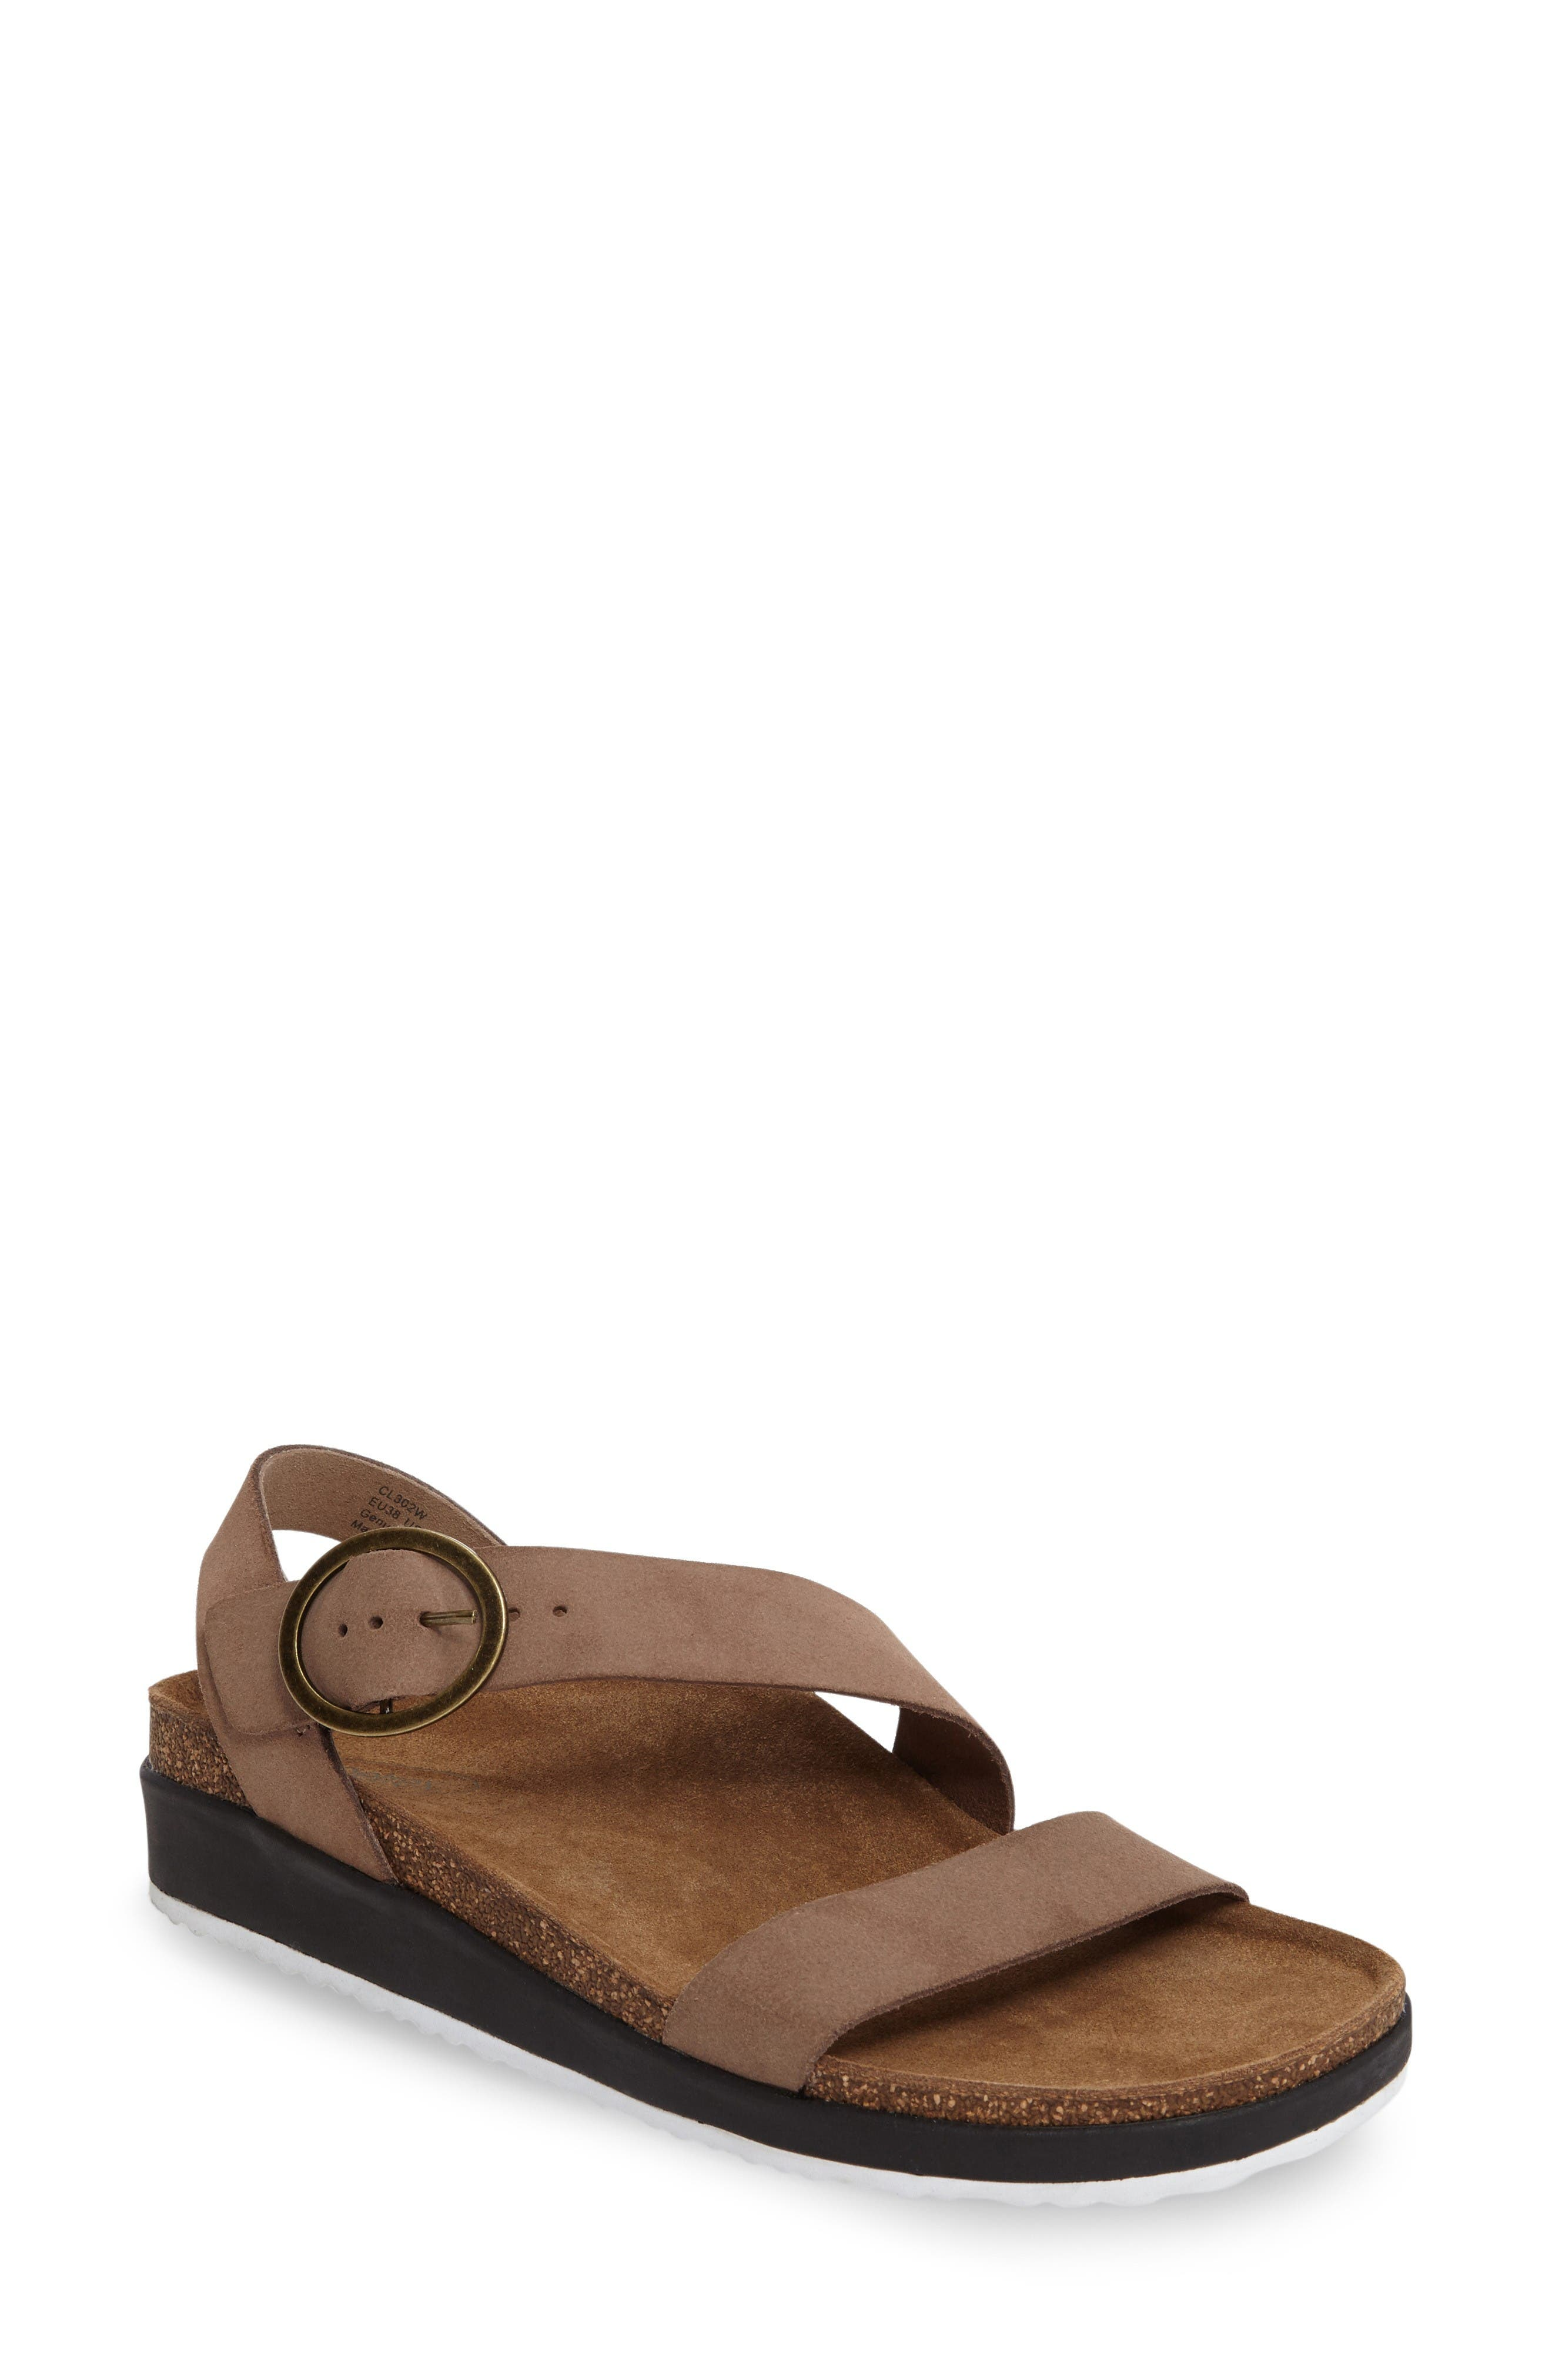 Adrianna Sandal,                             Main thumbnail 1, color,                             Taupe Suede